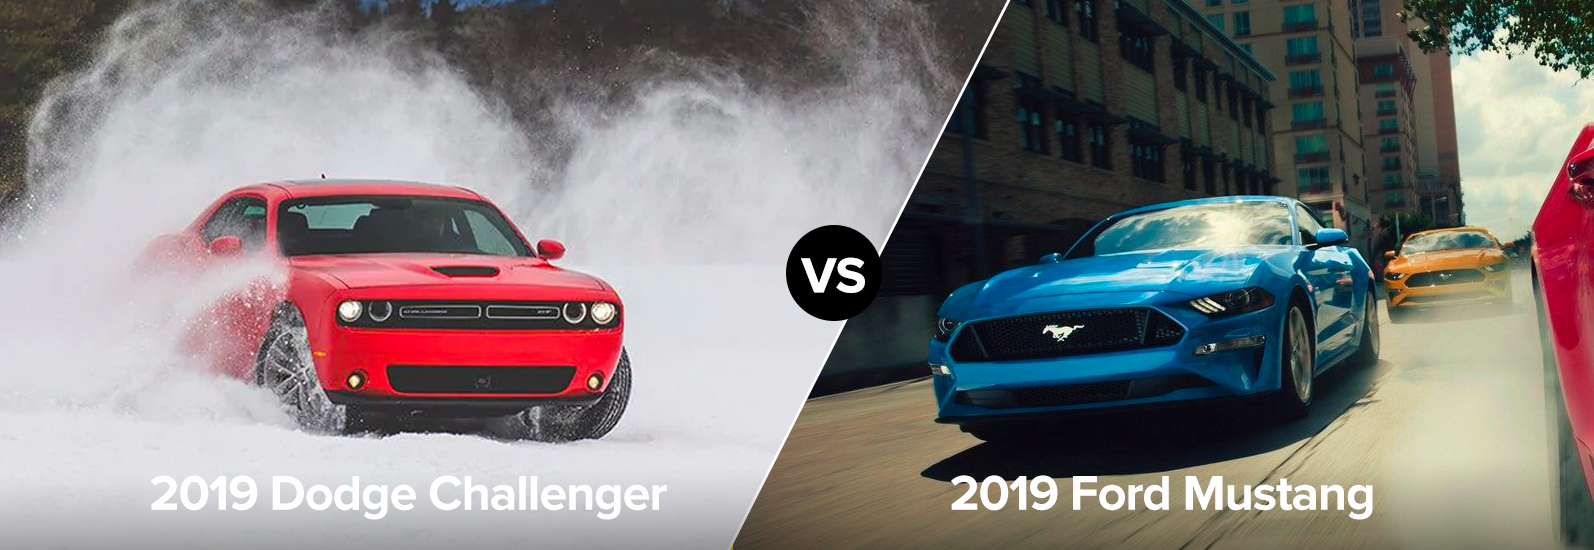 2019 Dodge Challenger vs 2019 Ford Mustang Exterior Chicago IL